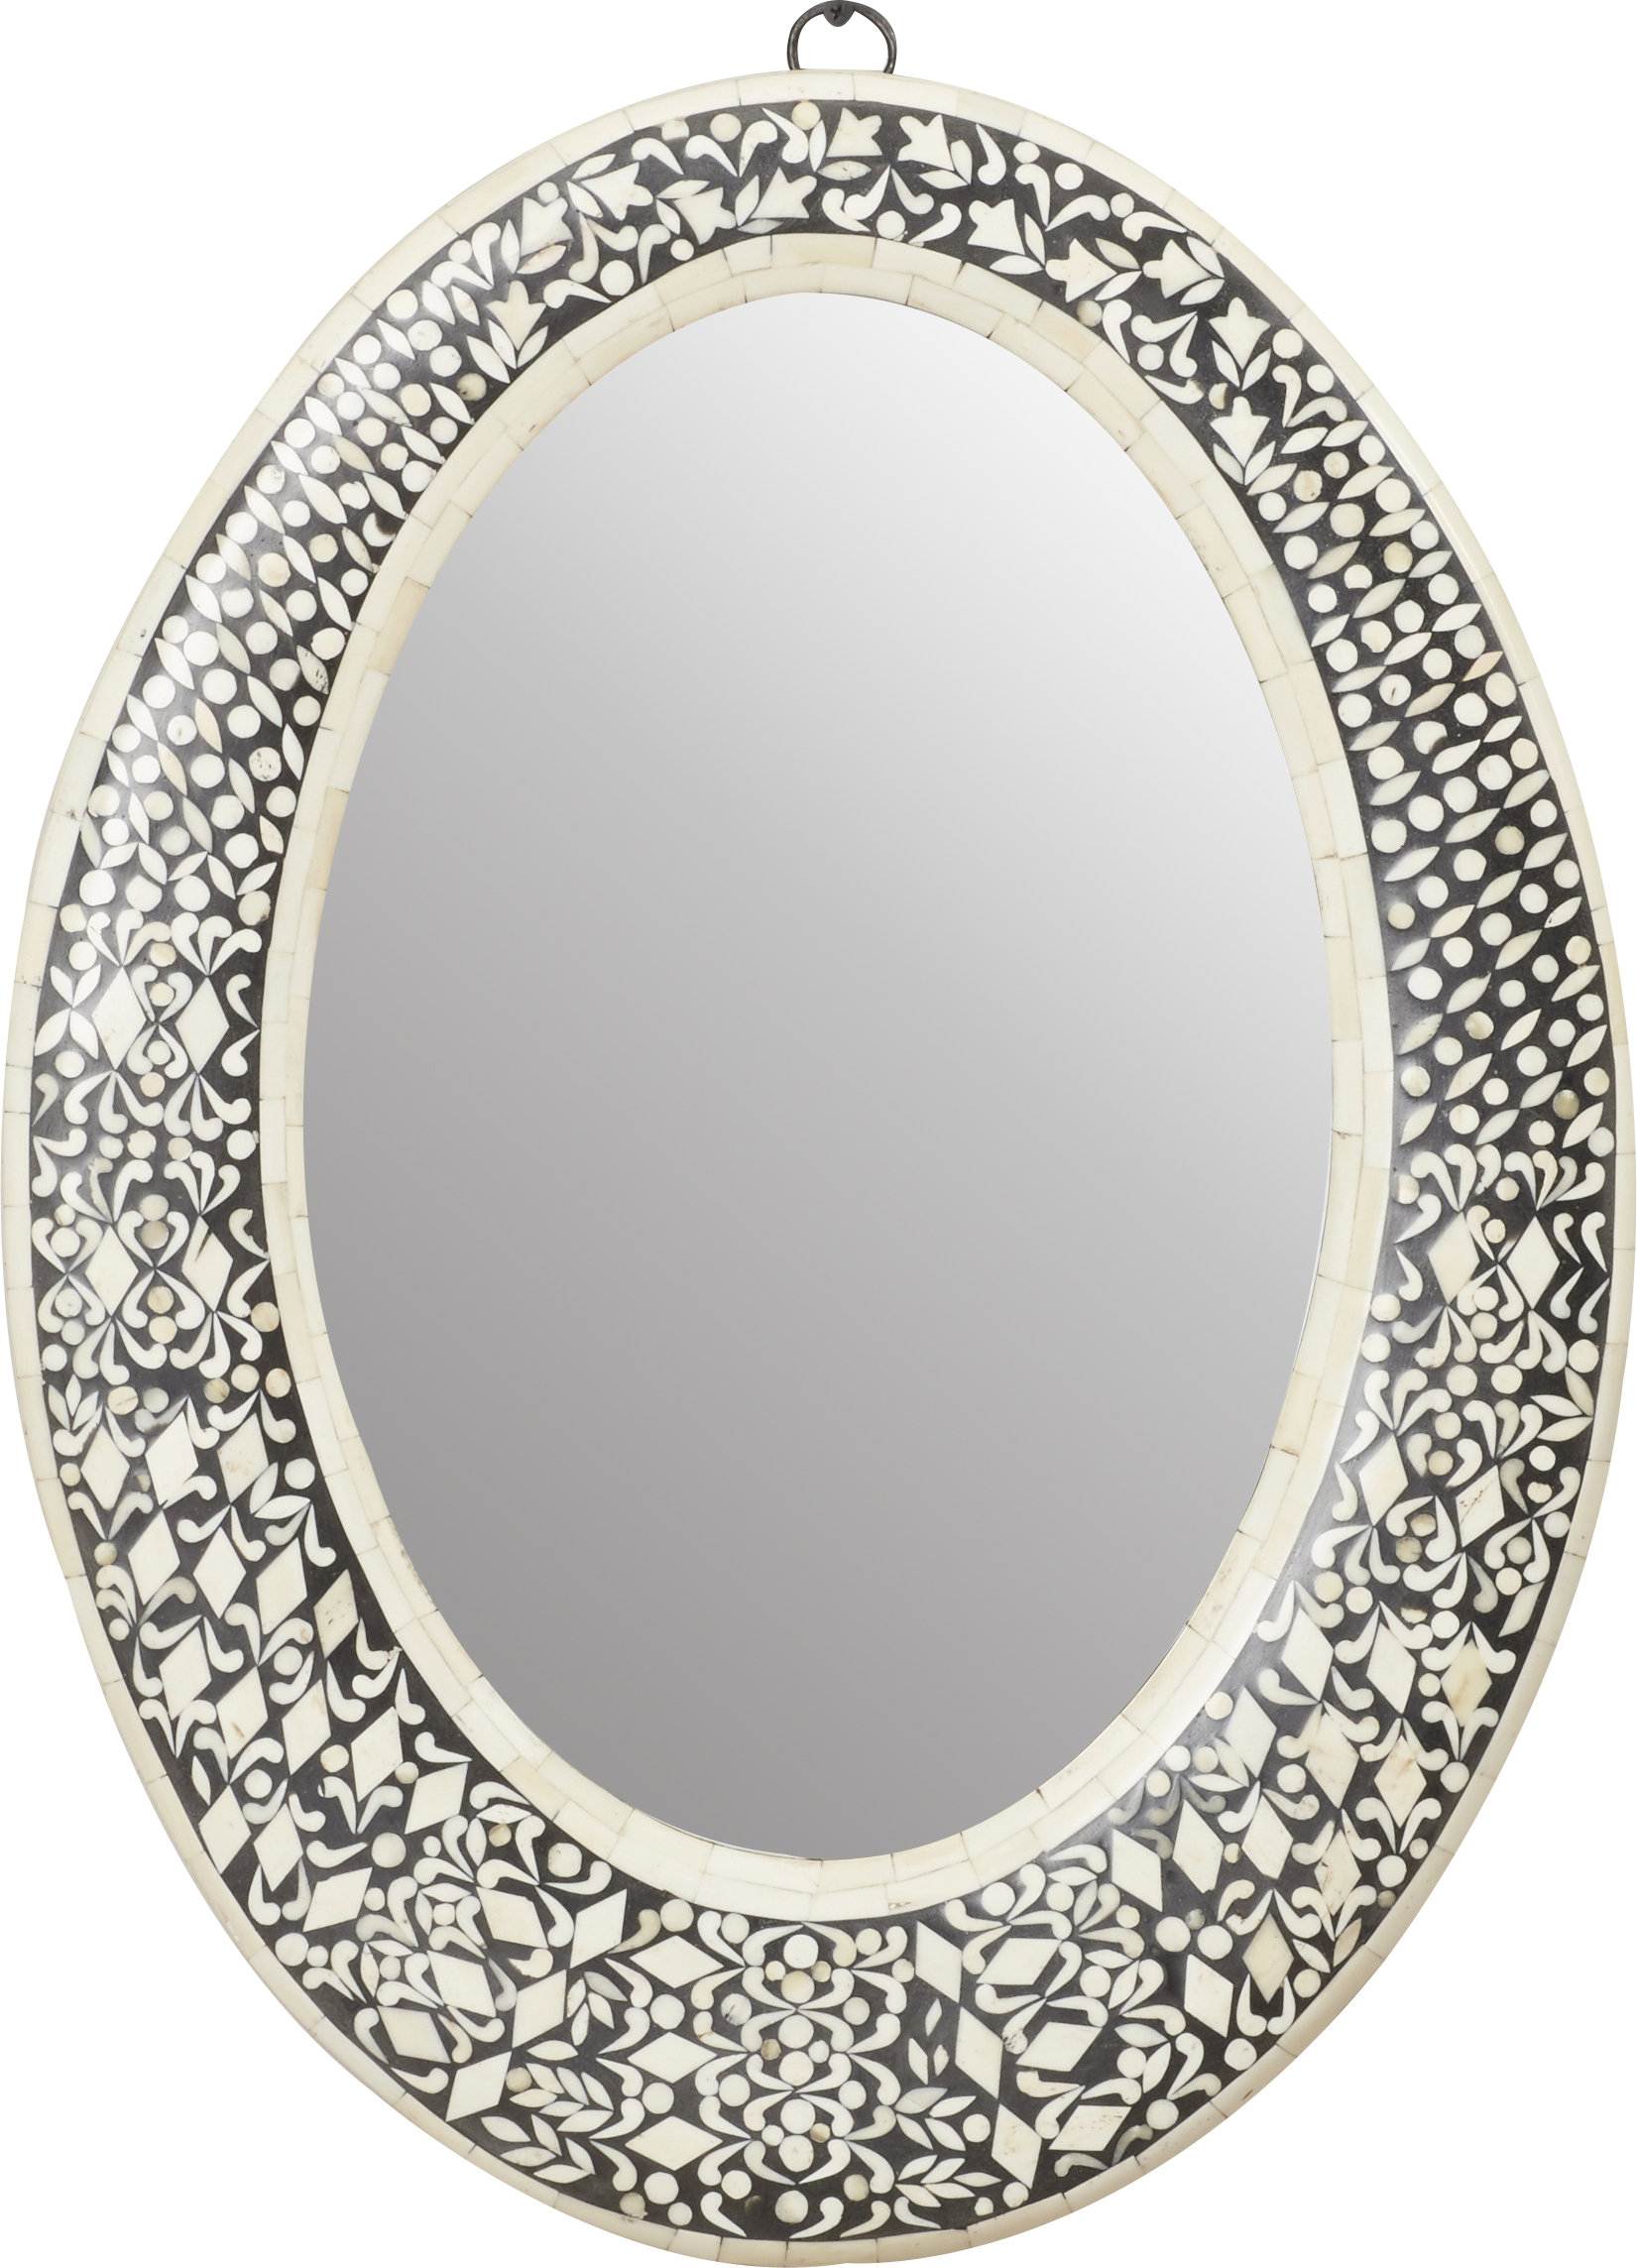 Traditional Oval Wall Mirror Throughout Sajish Oval Crystal Wall Mirrors (View 6 of 20)